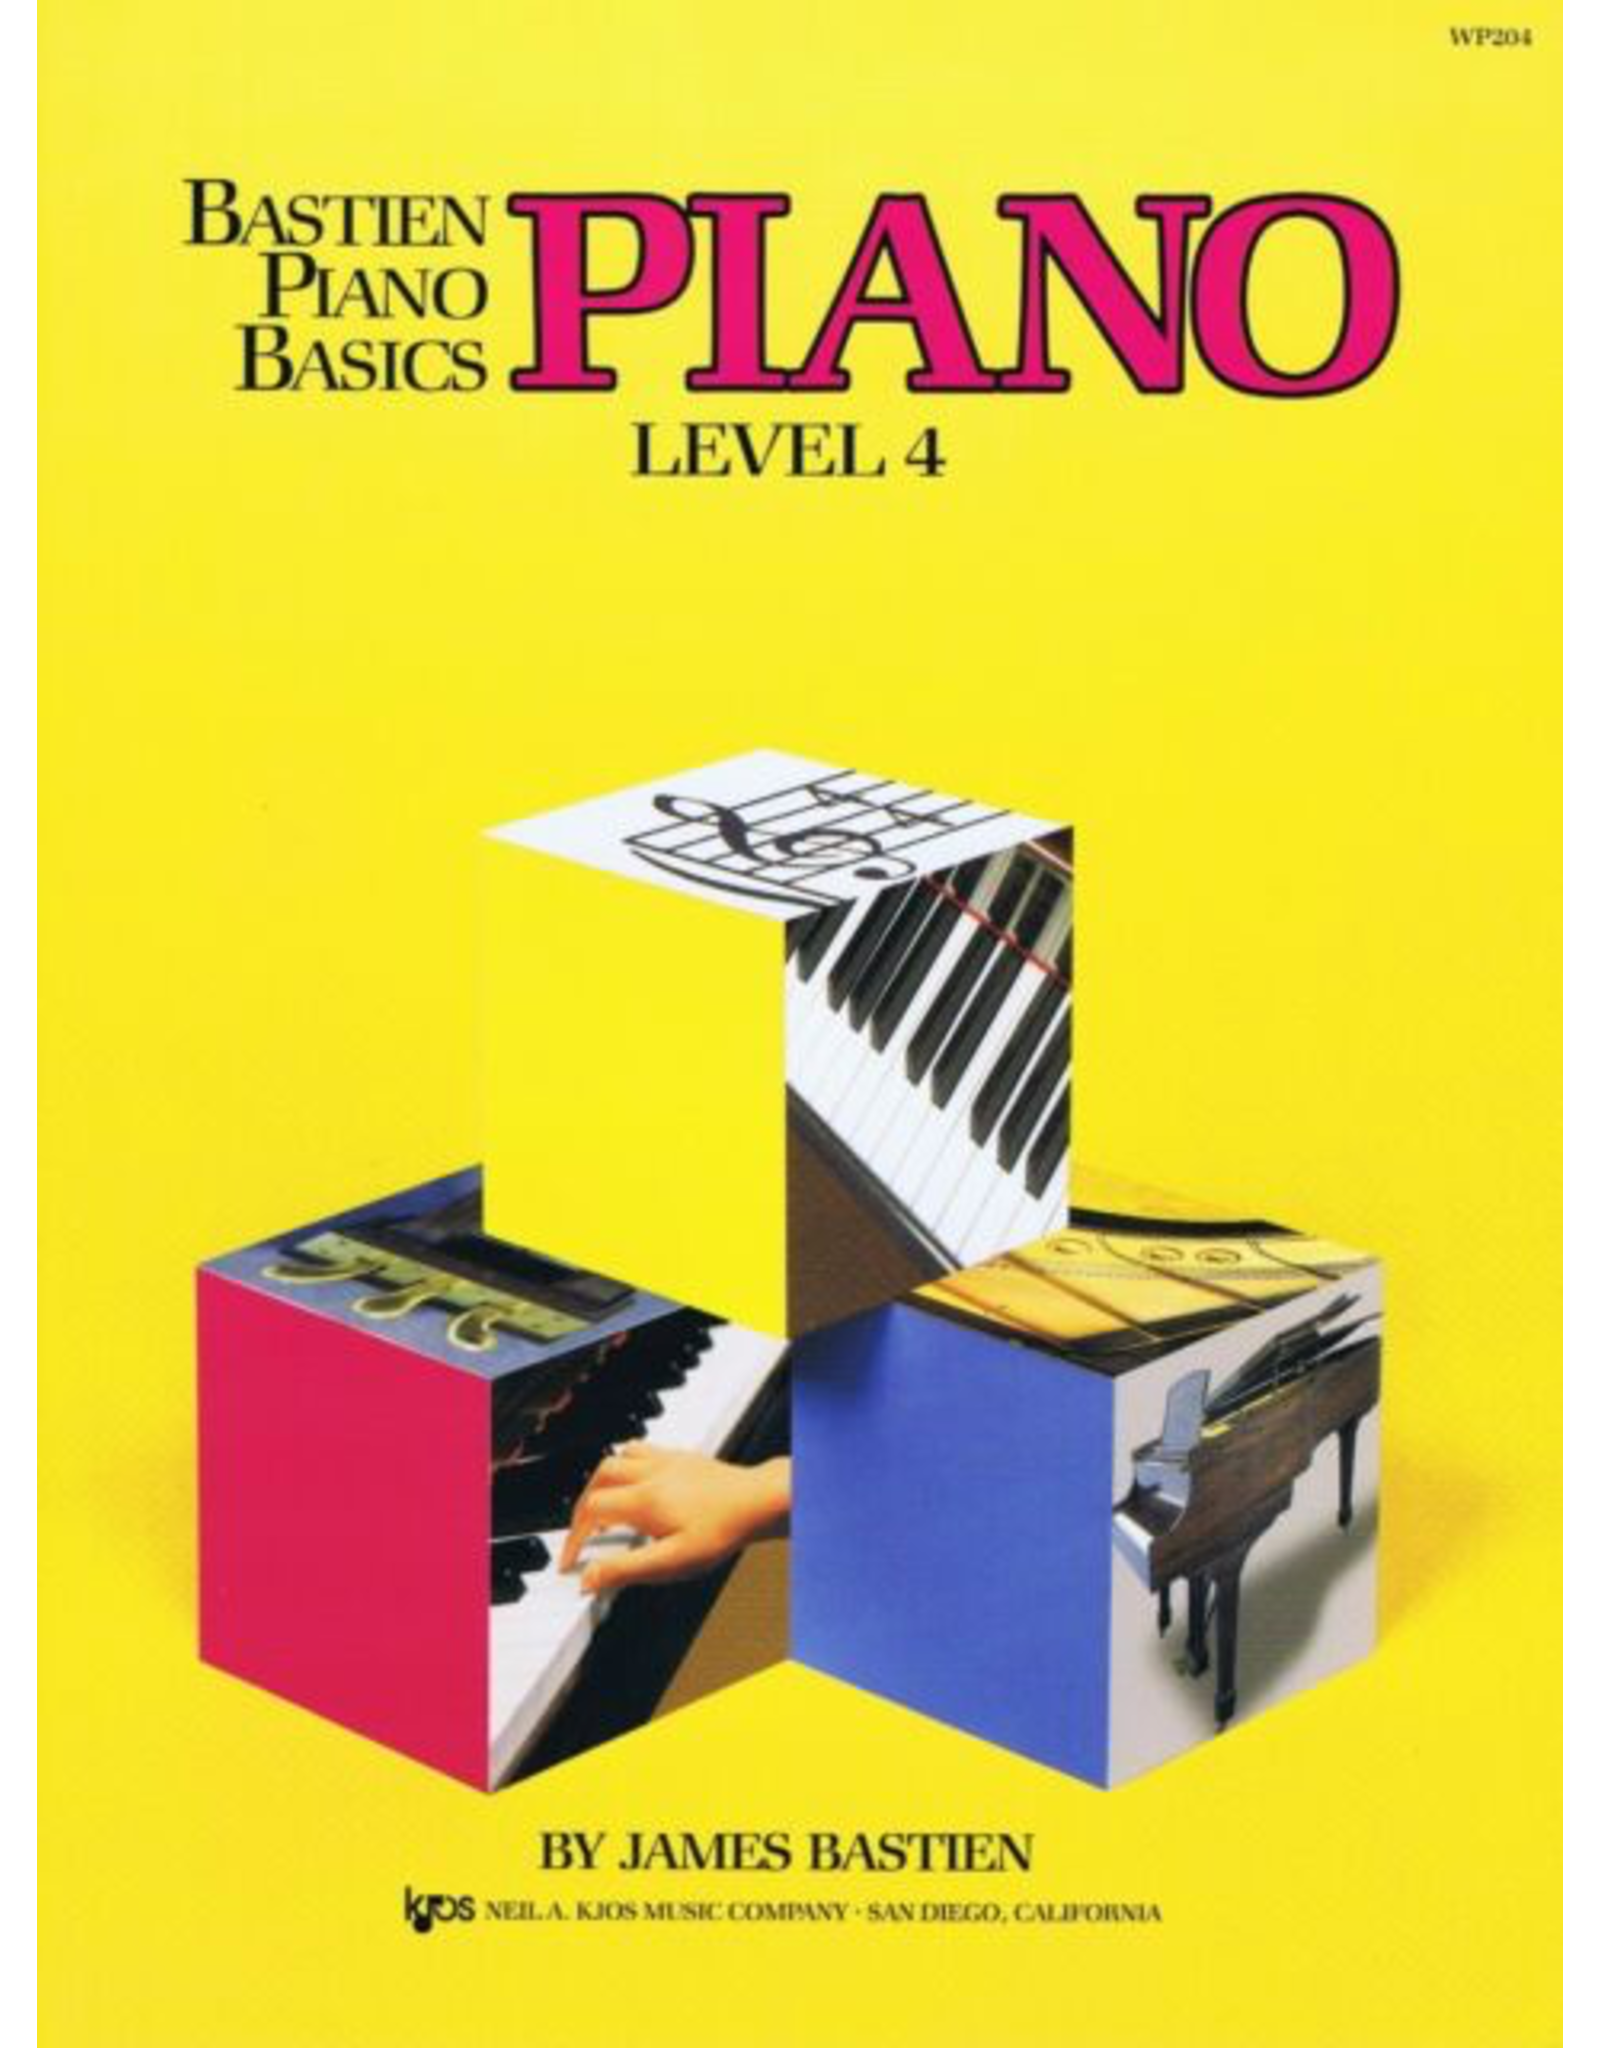 Kjos Bastien Piano Basics, Piano Level 4